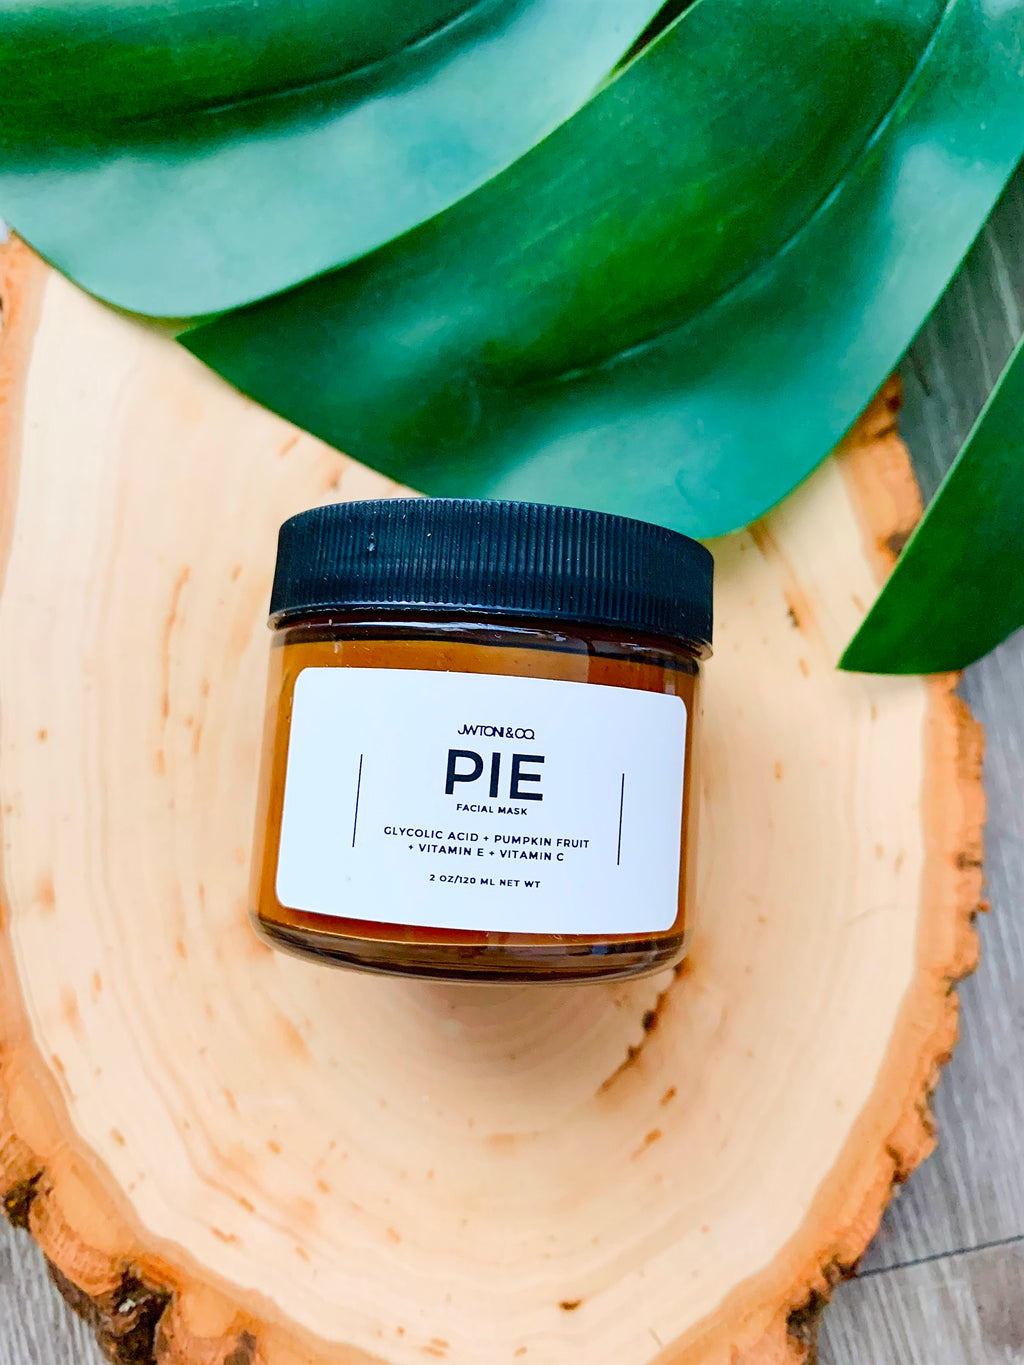 Pie - Exfoliating Facial Mask | Pumpkin Fruit + Glycolic Acid + Vitamin E + Vitamin C